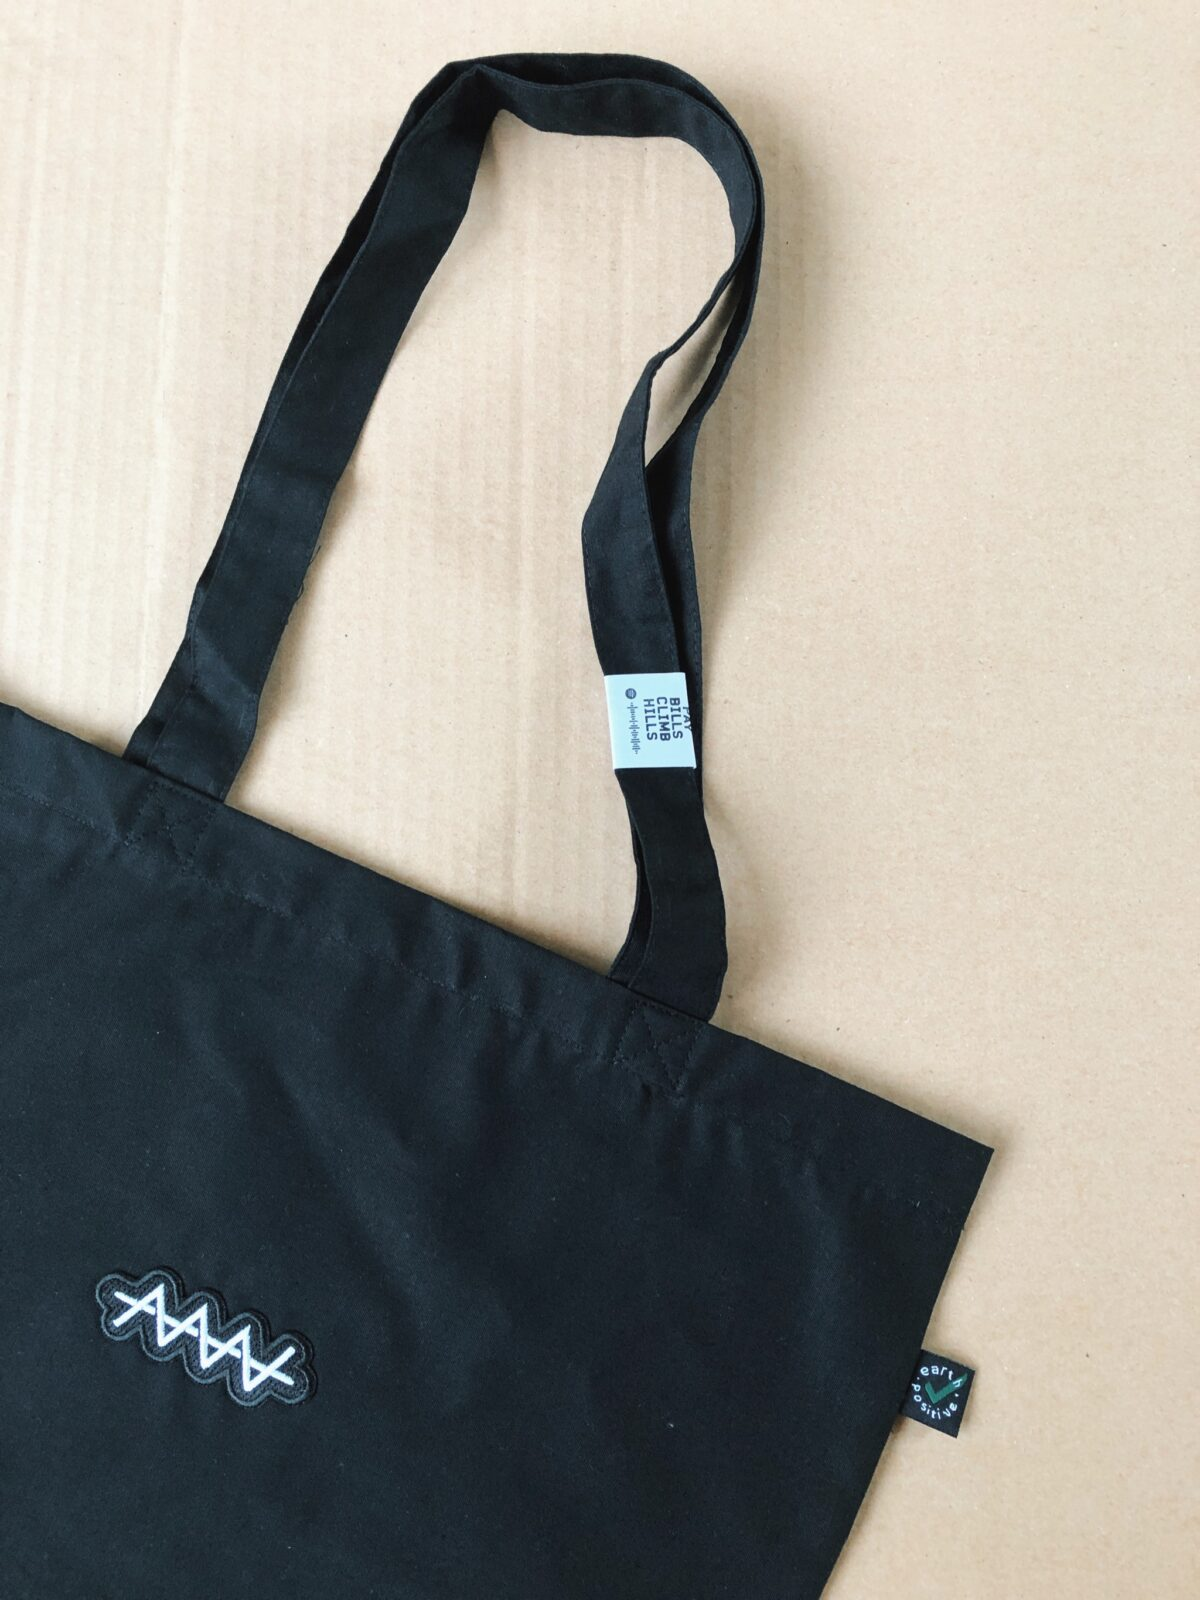 Organic cotton, CO2 Neutral Tote bag with a scannable Spotify tag